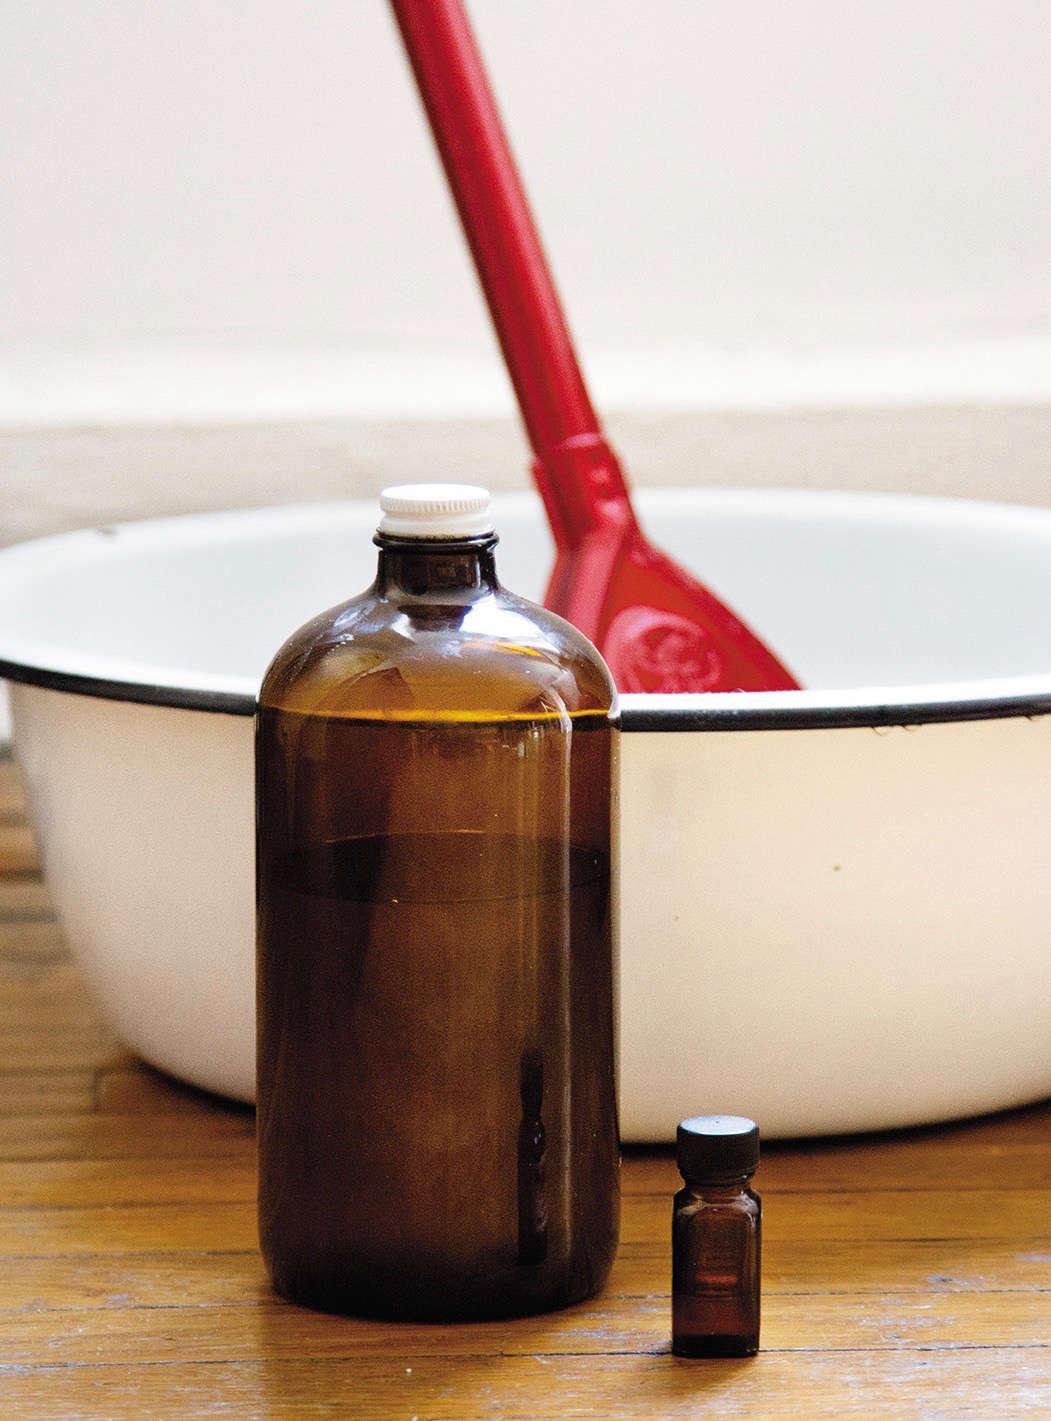 classic cleaning solutions from simple matters by erin boyle | remodelista 10